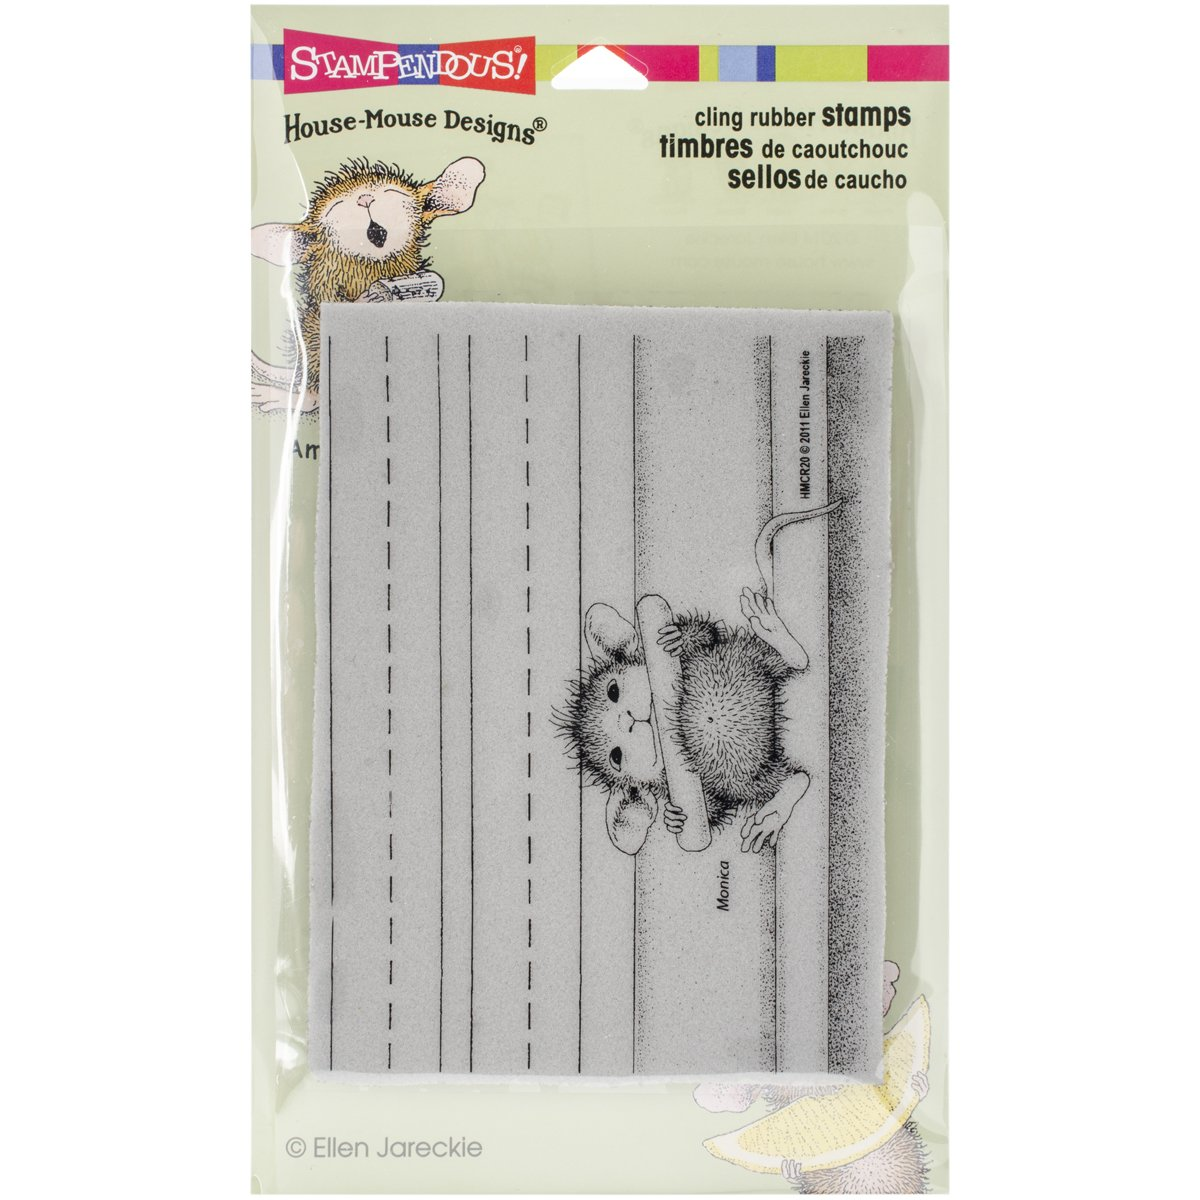 Stampendous House Mouse si aggrappano timbro 4